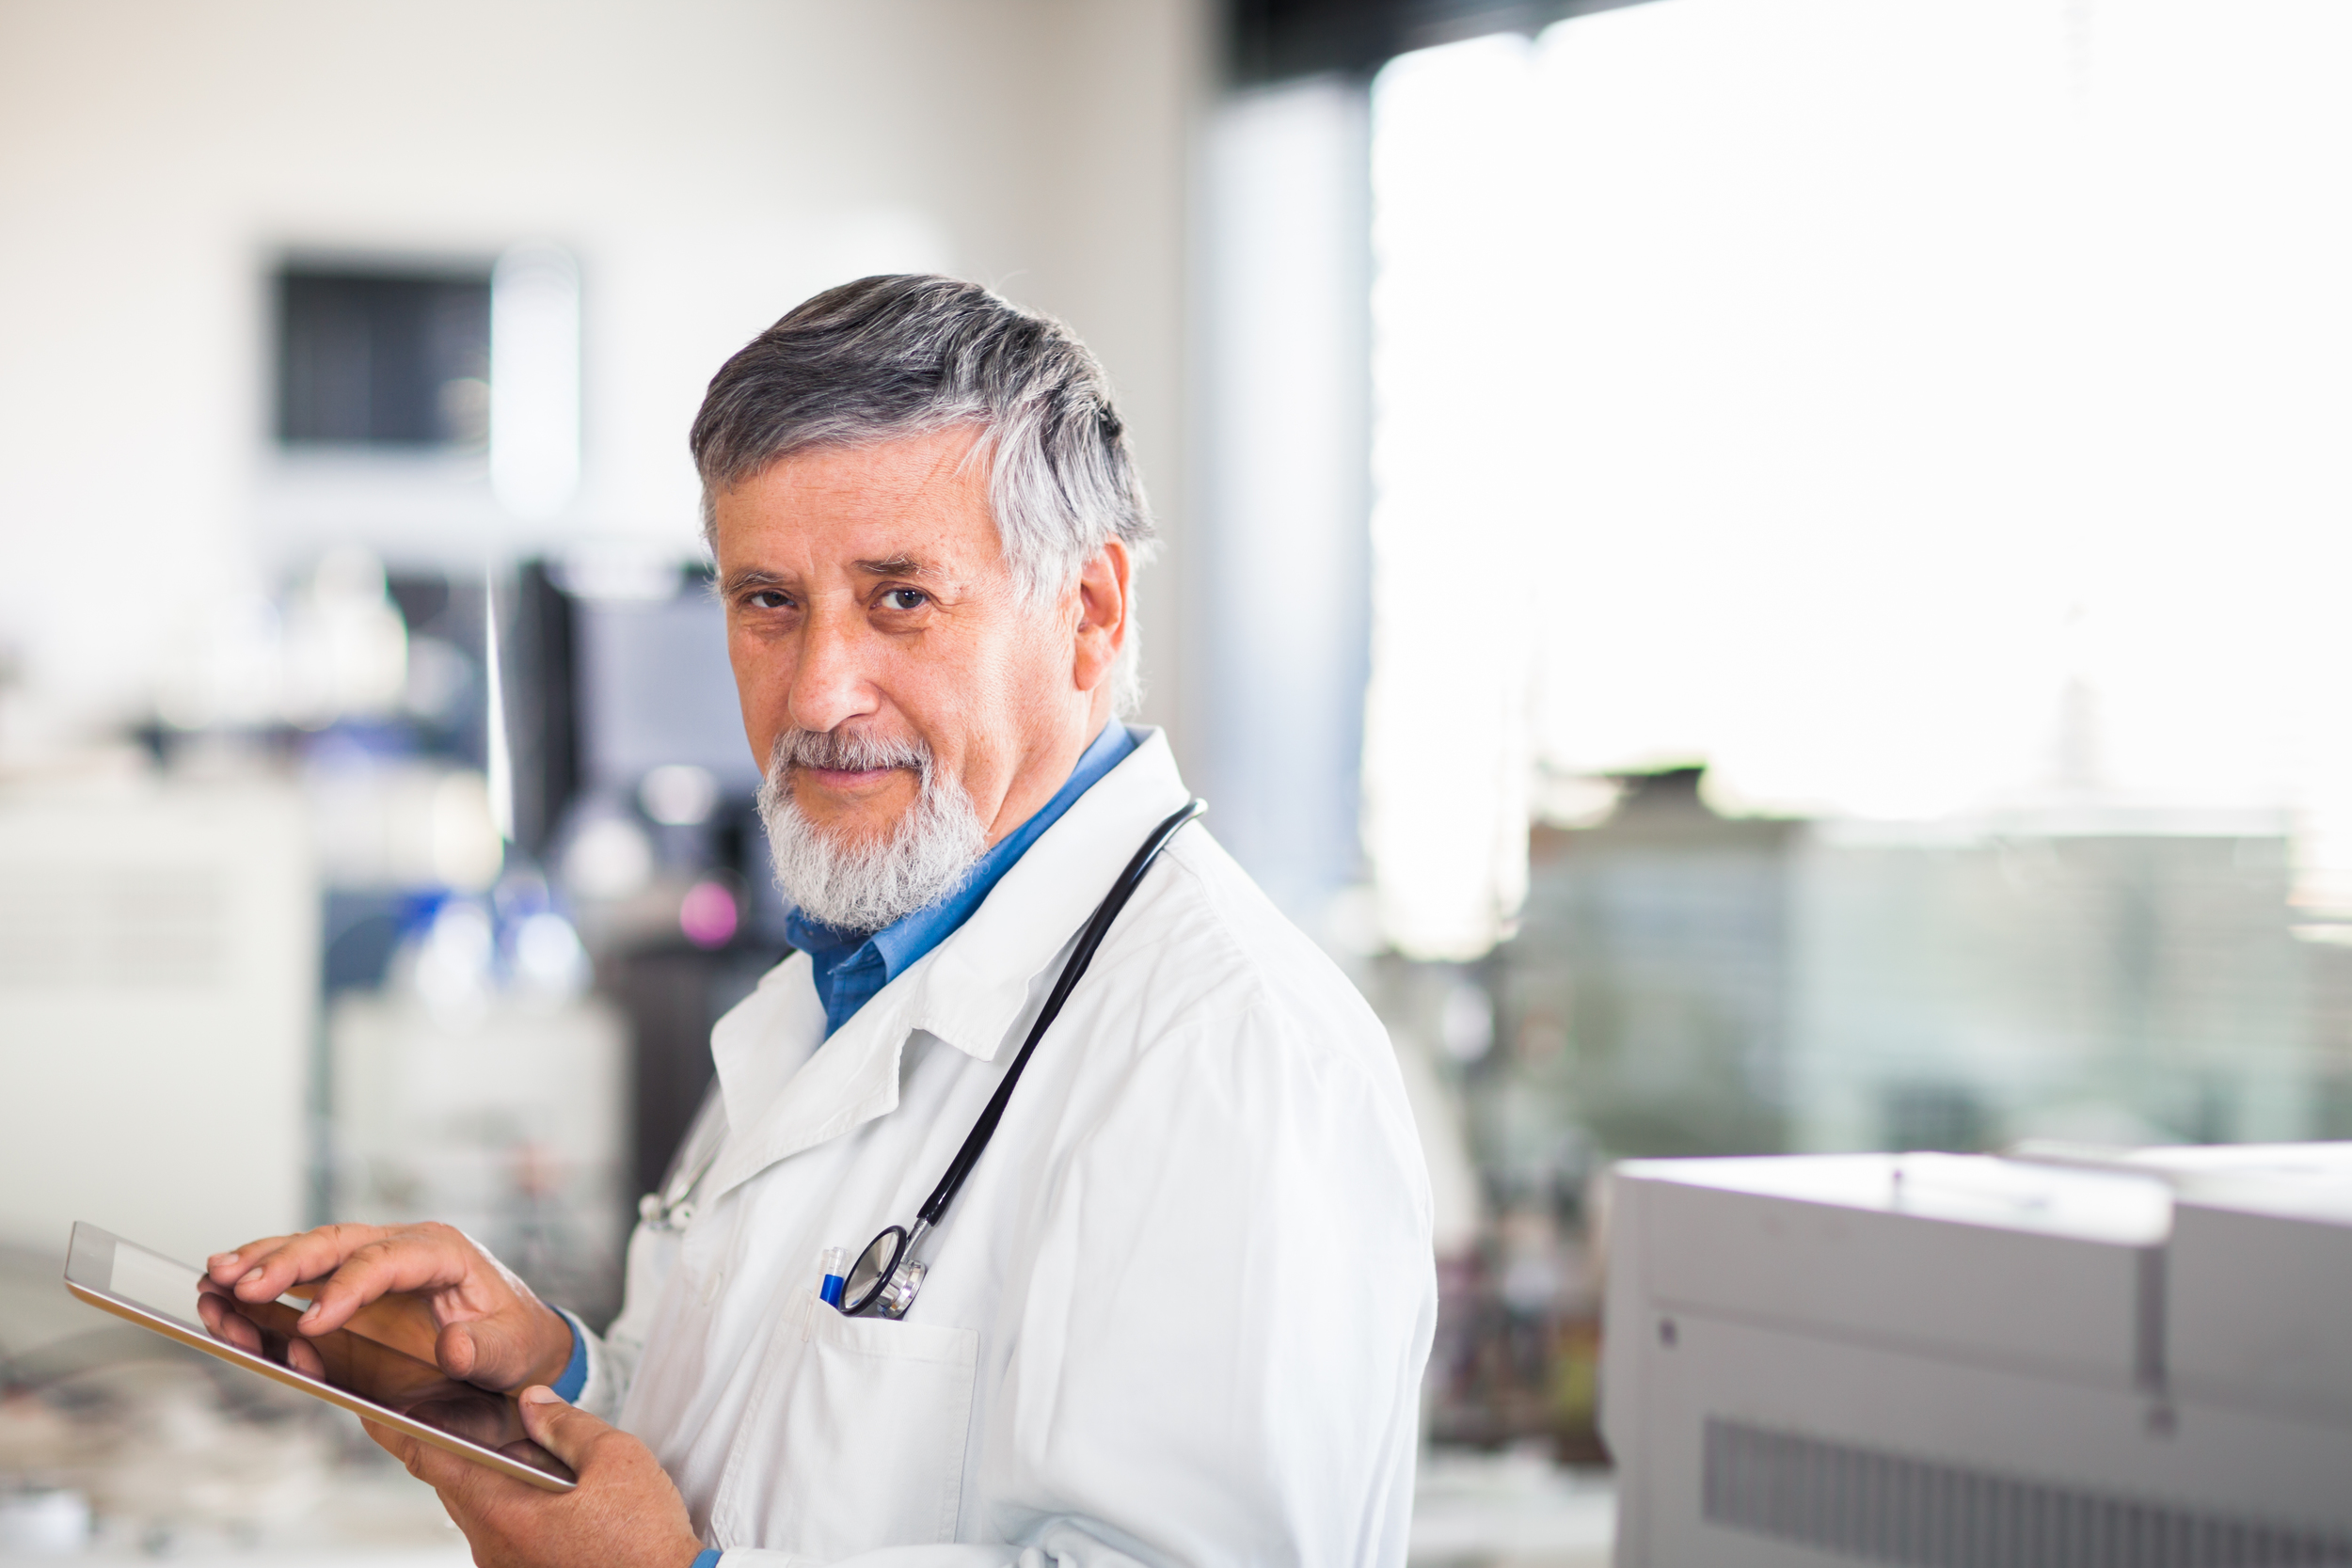 stock-photo-senior-doctor-using-his-tablet-computer-at-work-color-toned-image-99130298.jpg